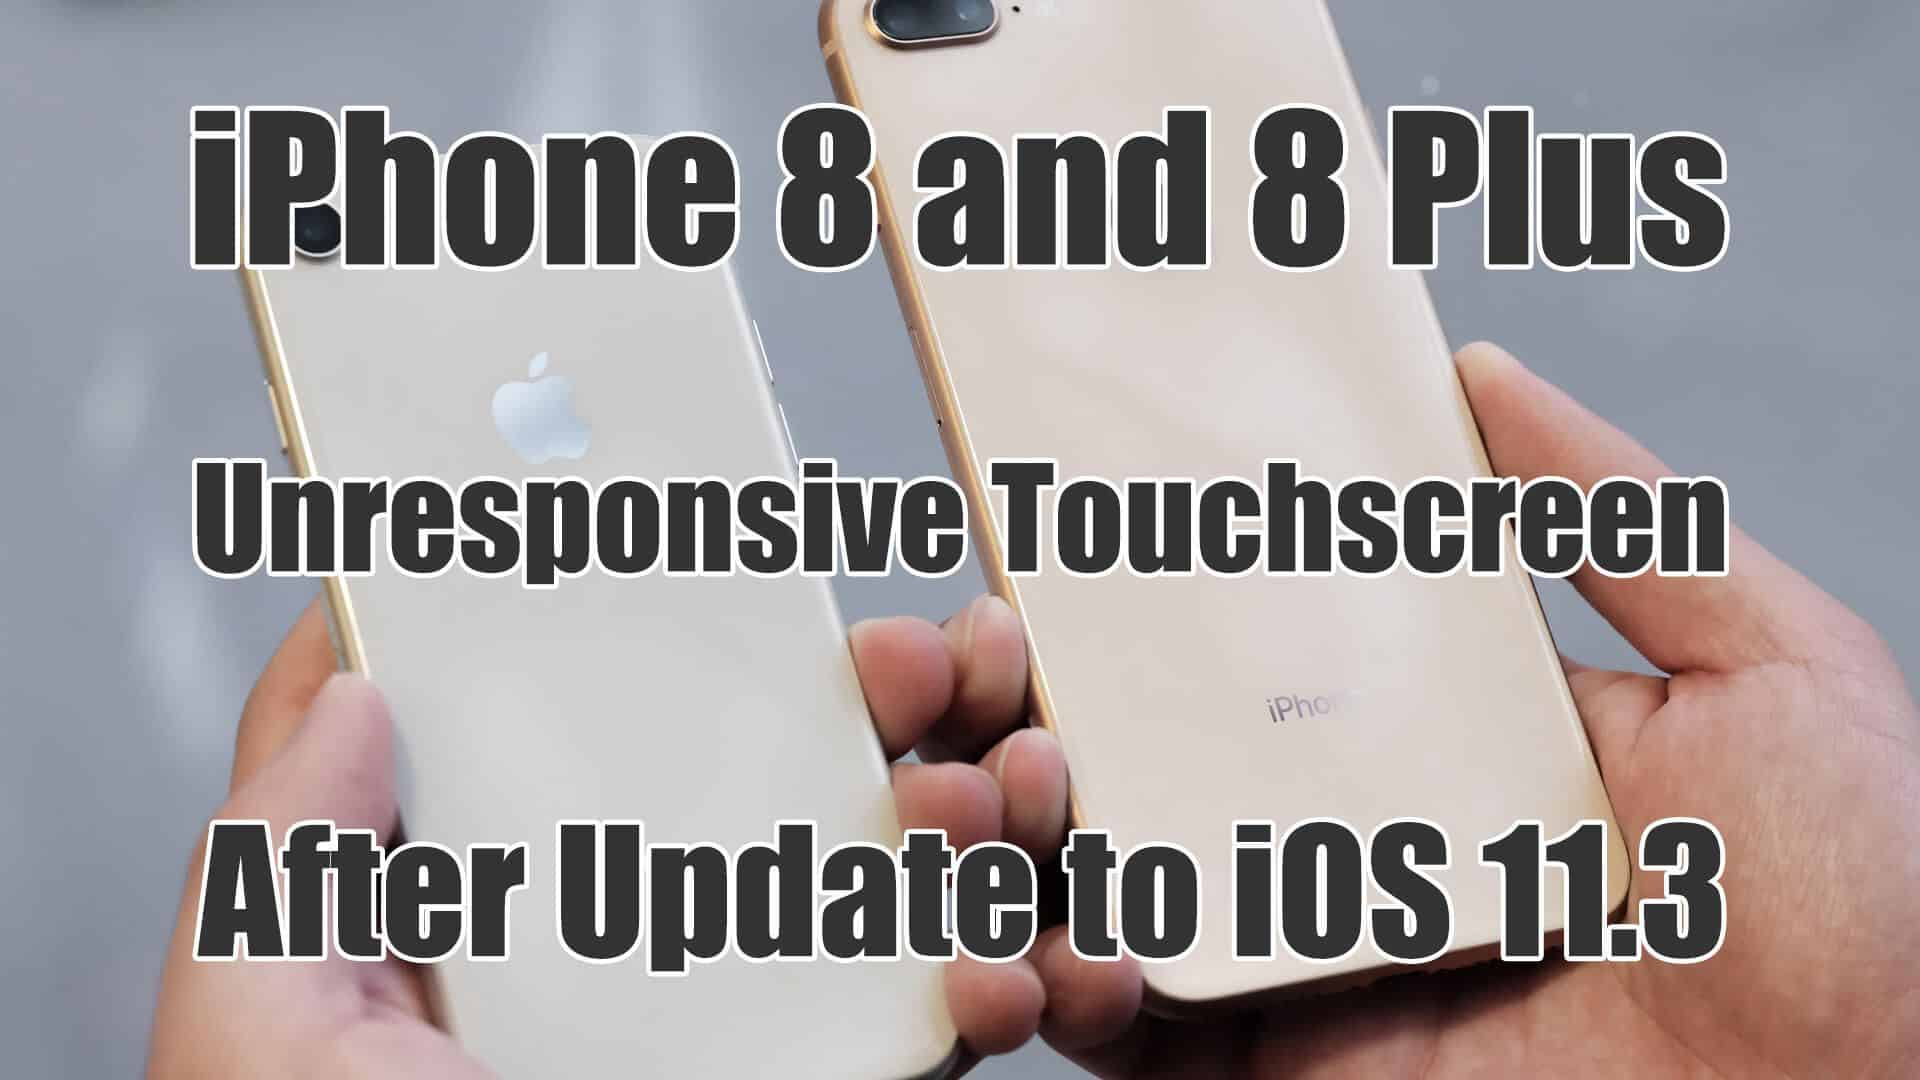 iphone-8-8-plus-unresonsive-touchscreen-after-update-ios-11.3_1